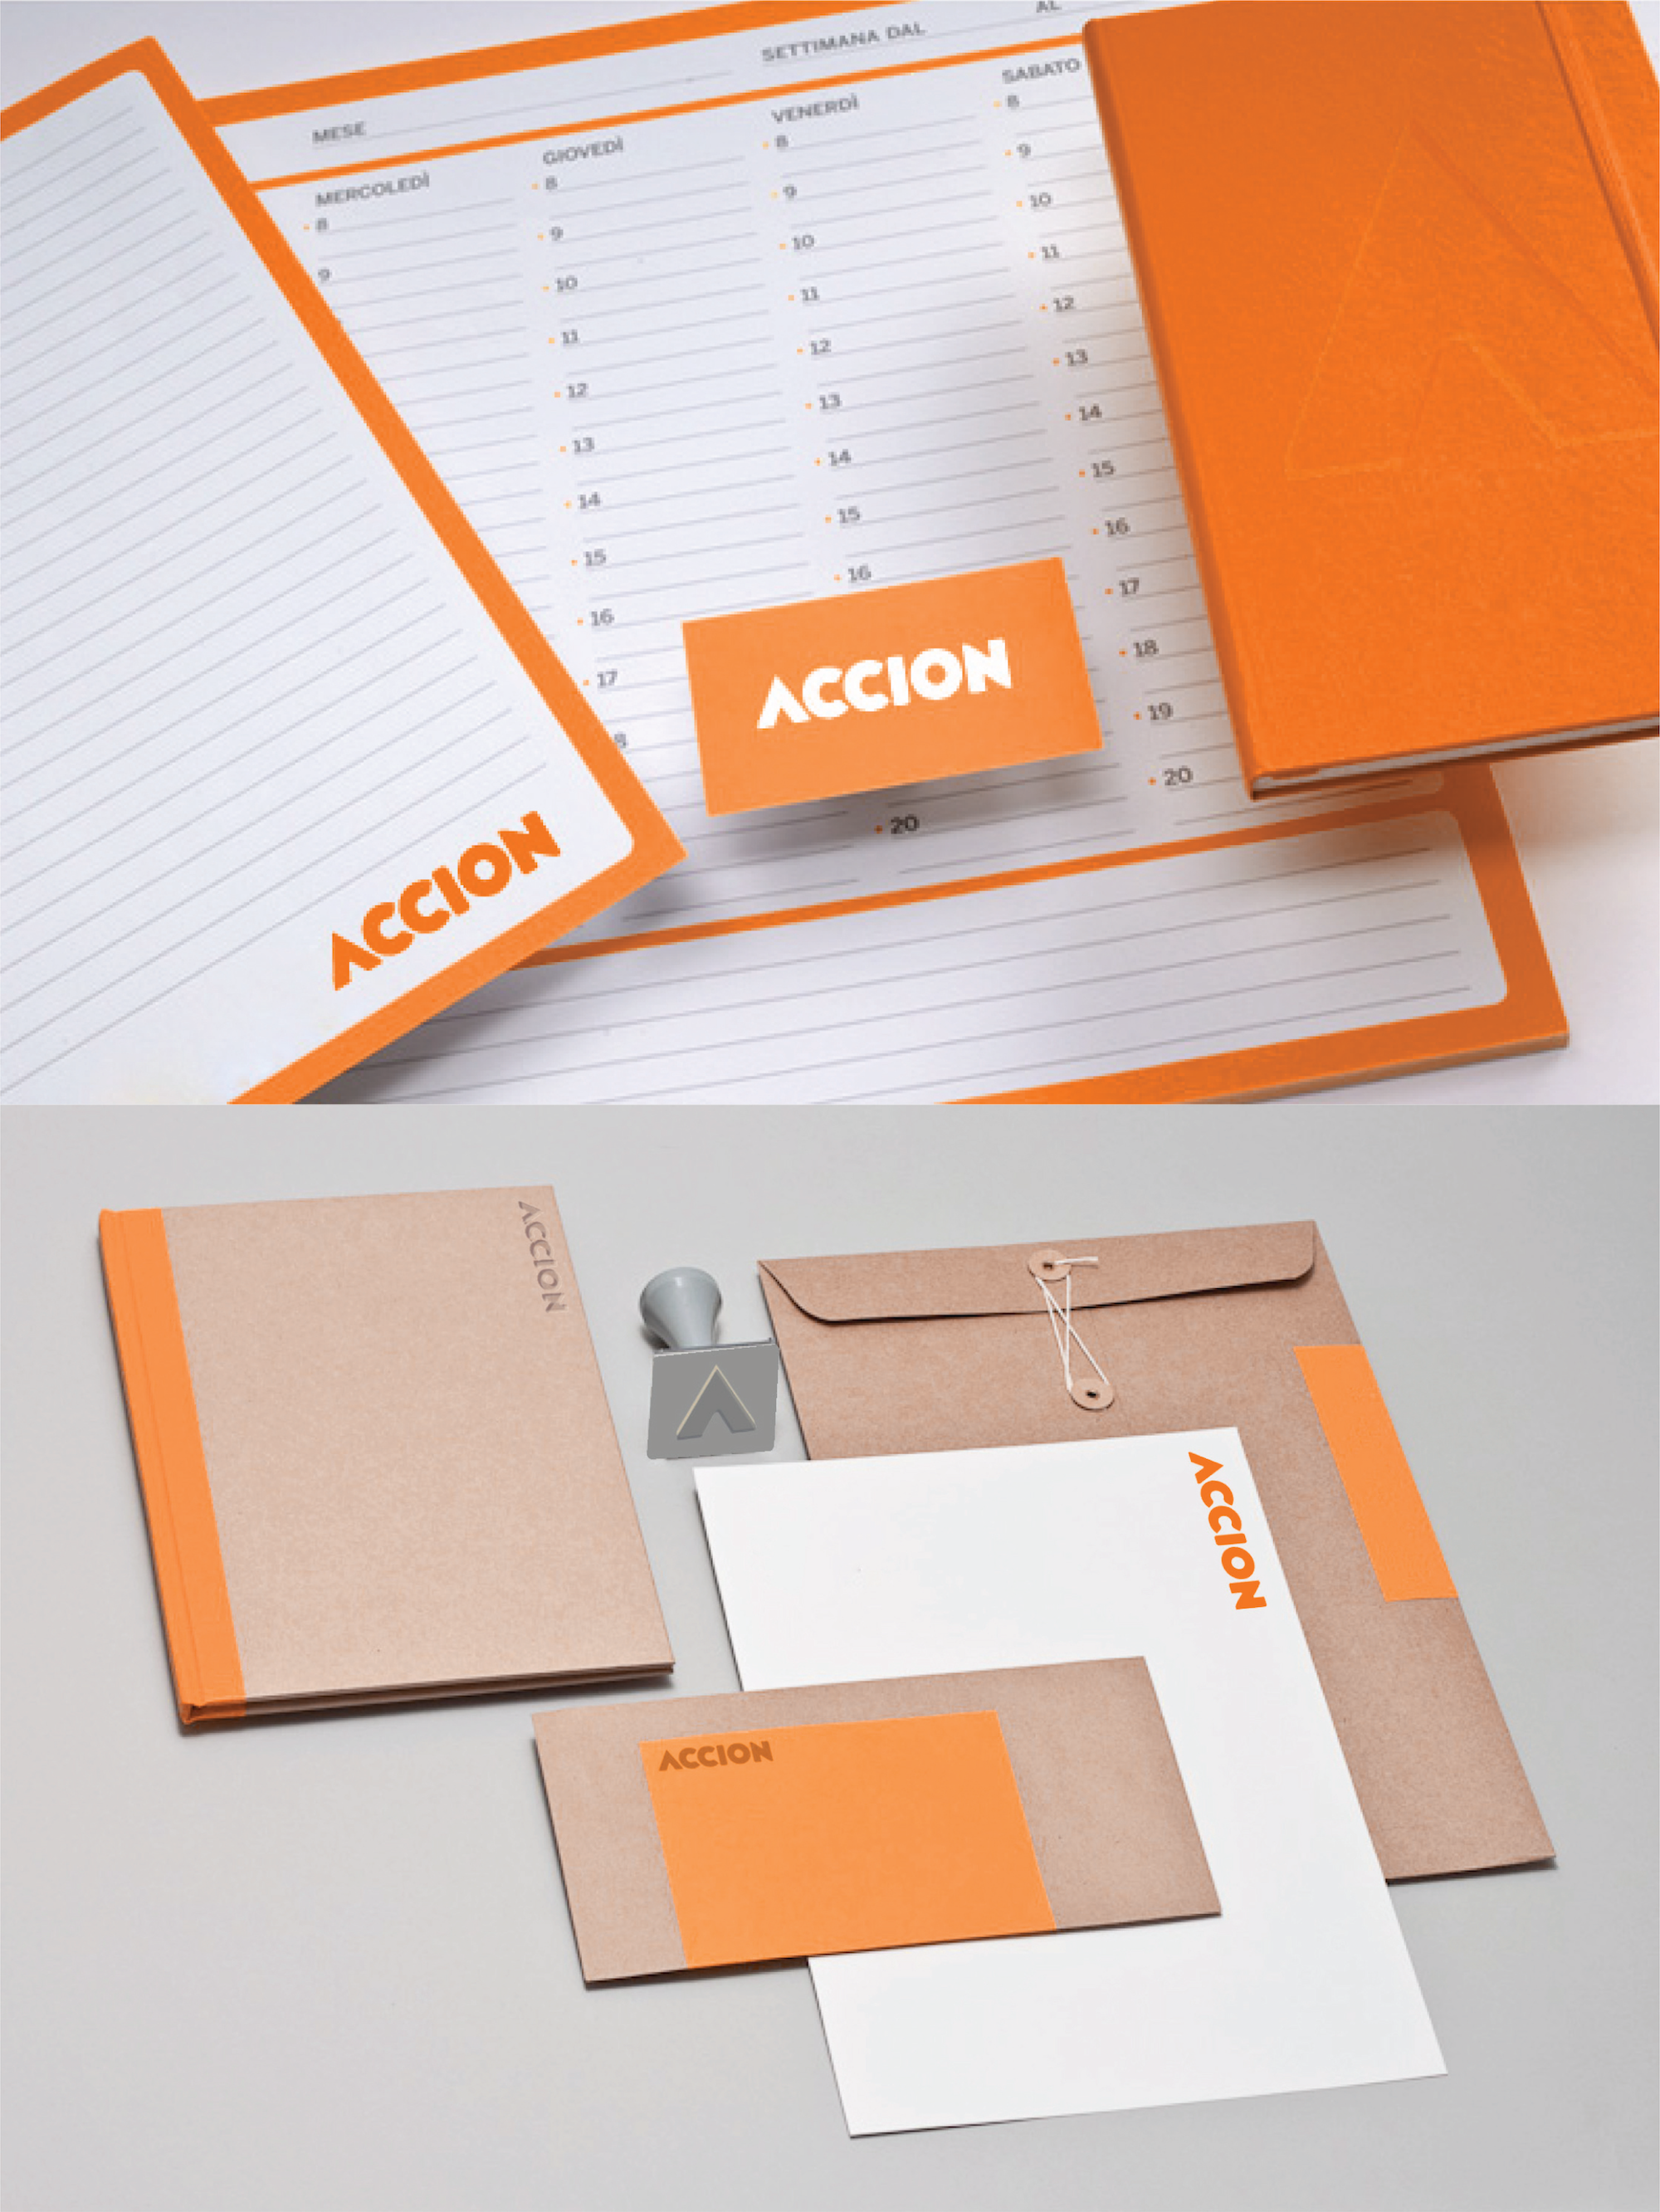 Accion notebooks, calendar, stationery